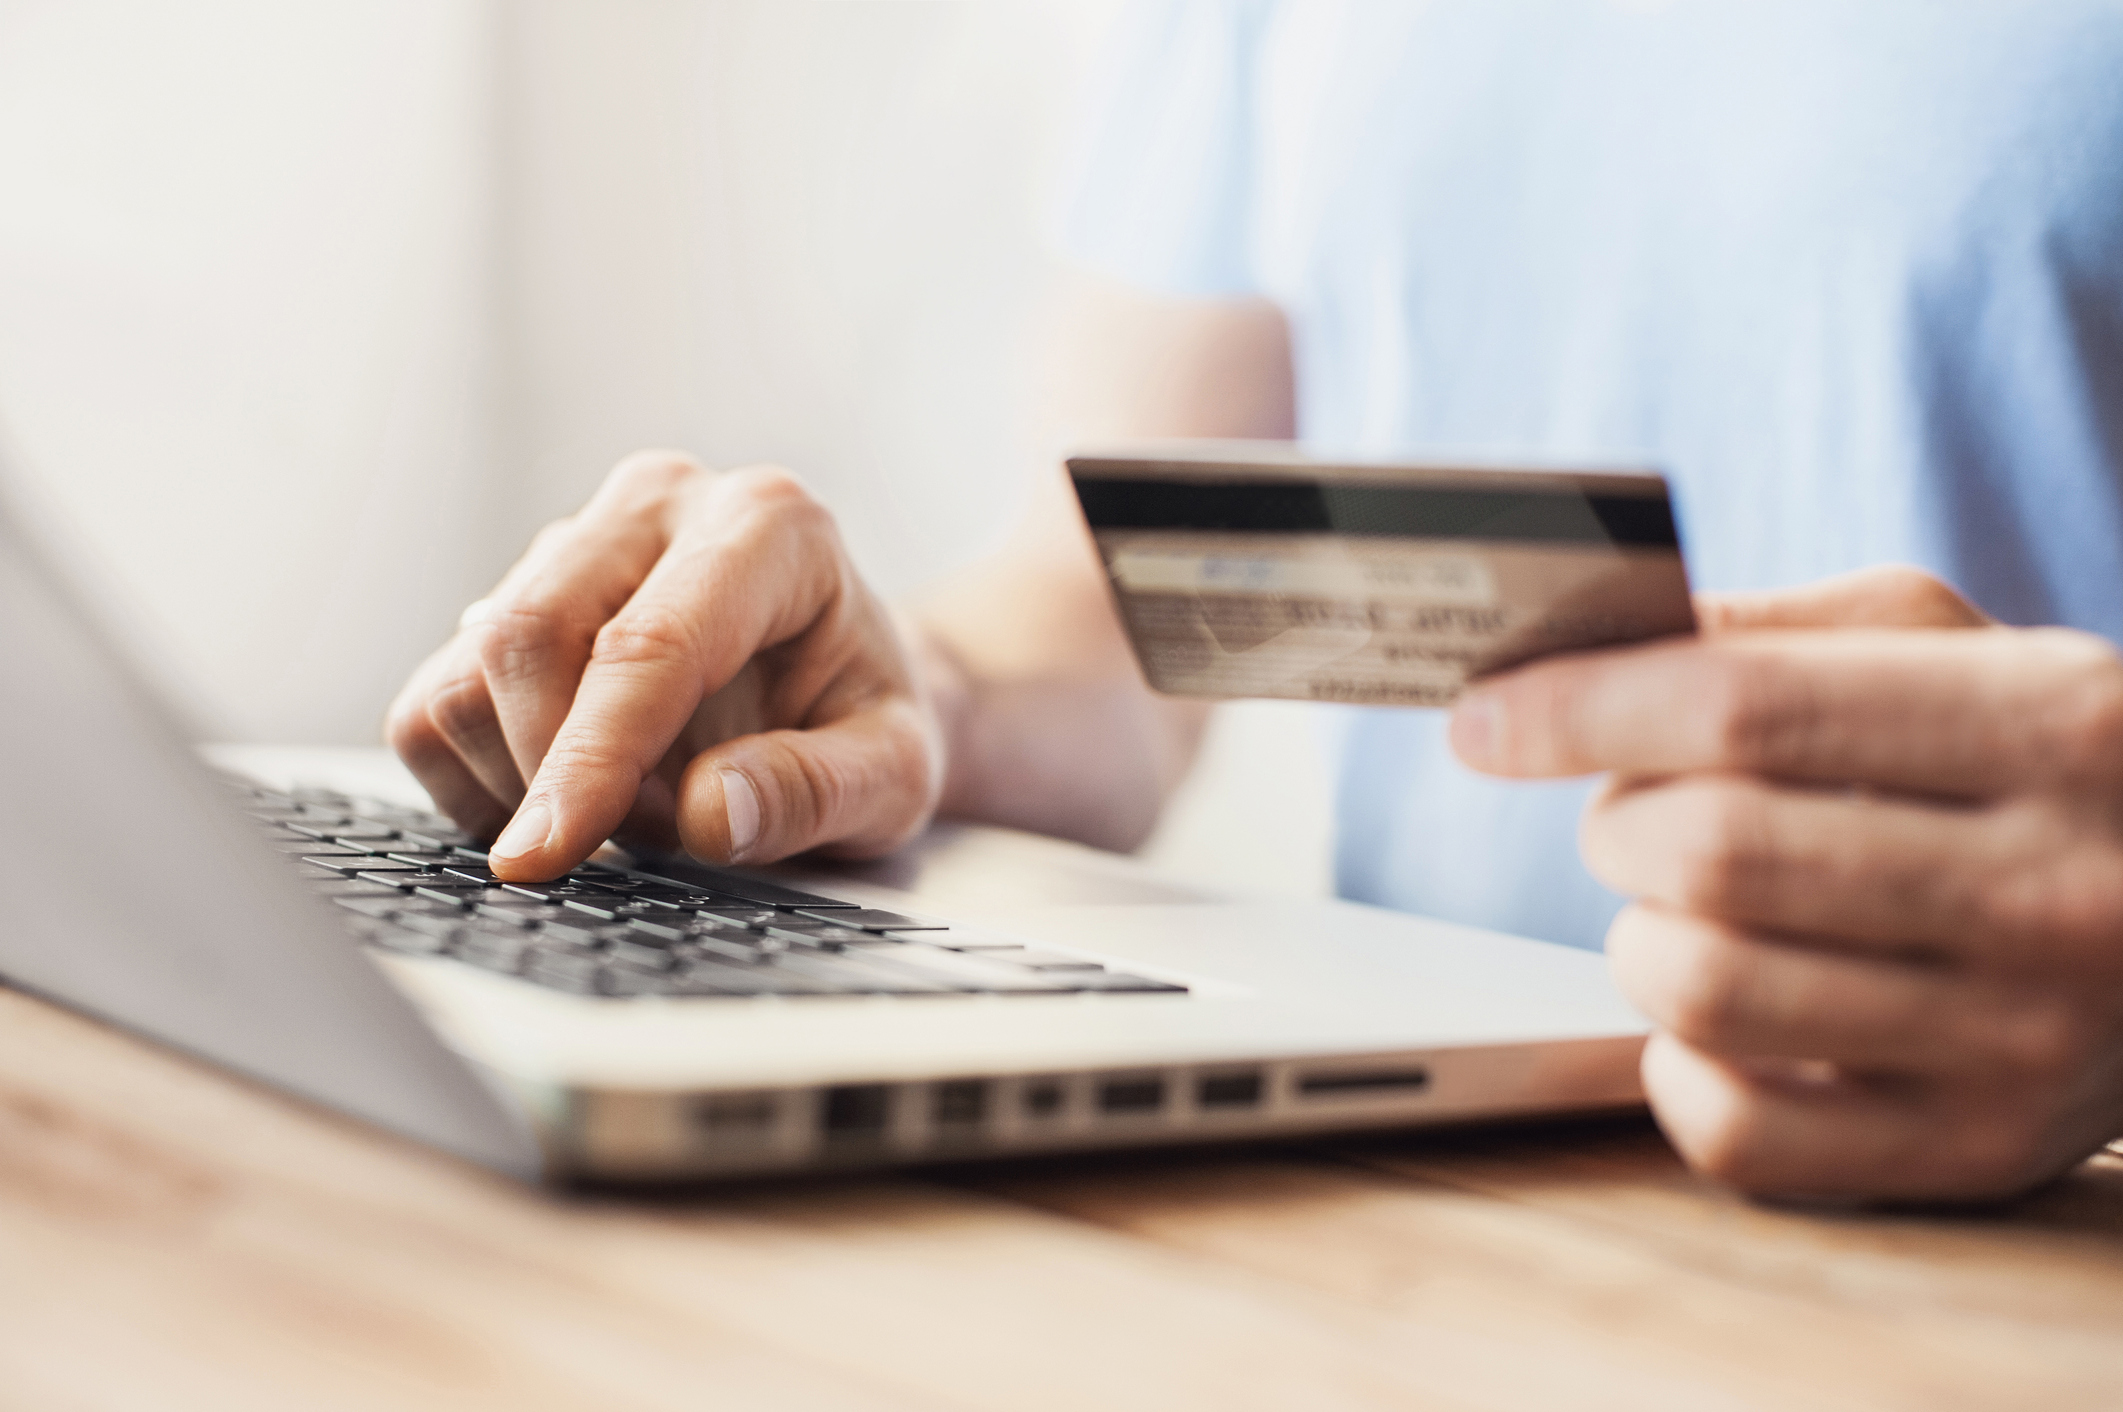 Responsible Credit Repair - Healthy credit is a combination of habits, accuracy, and vigilance. Our services provide real results that help clients resolve, build and maintain a healthy credit profile.